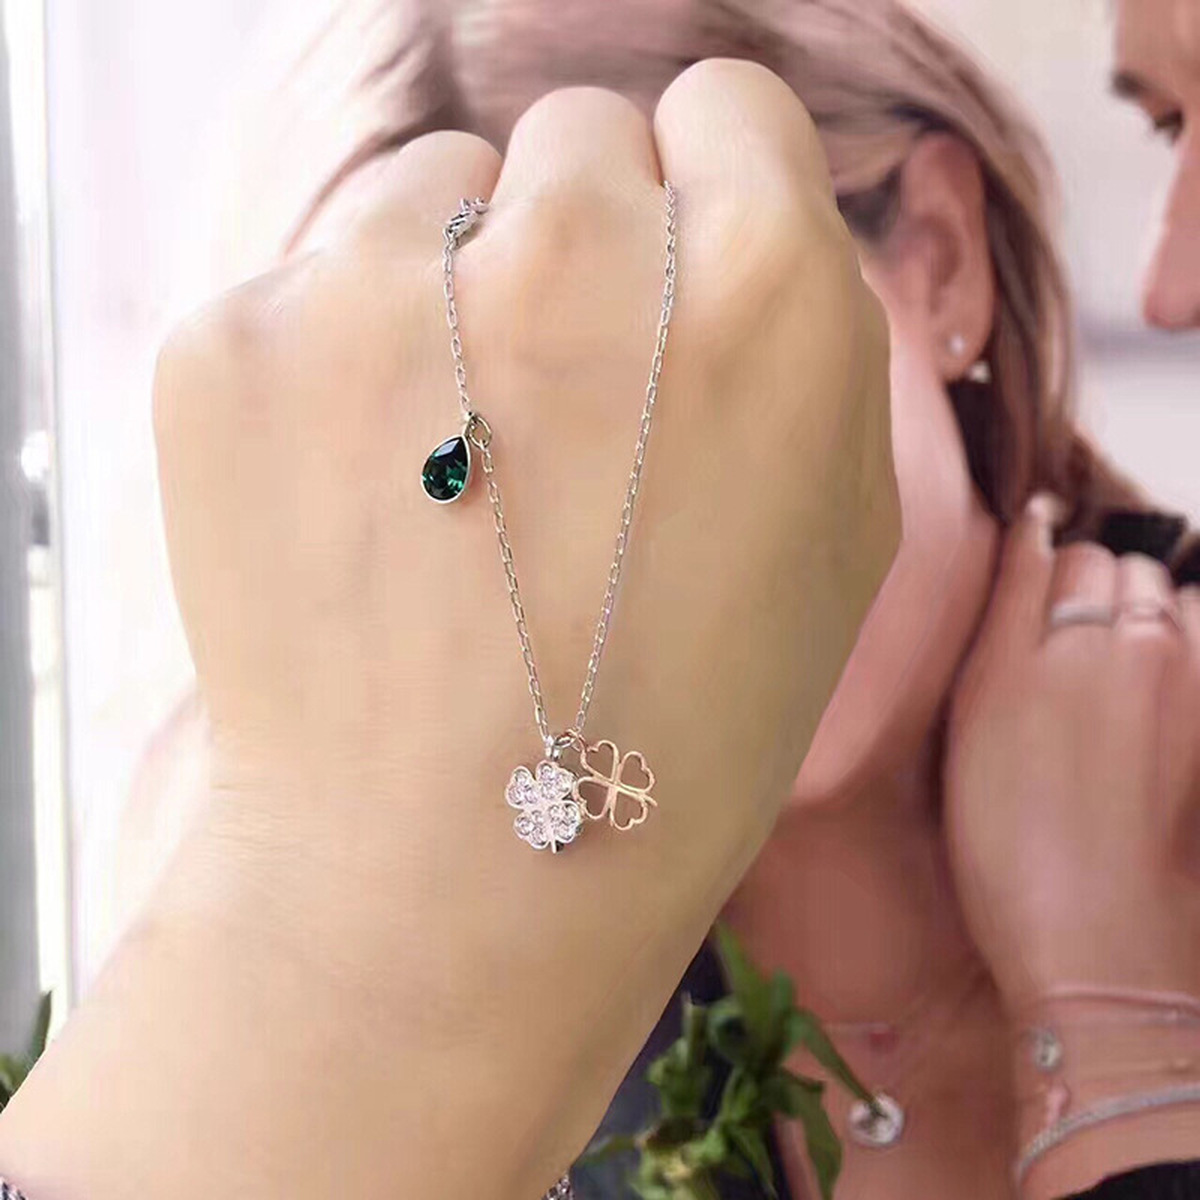 QSJIE High quality SWA clover clavicle chain double Lucky Clover Necklace Glamorous fashion jewelry